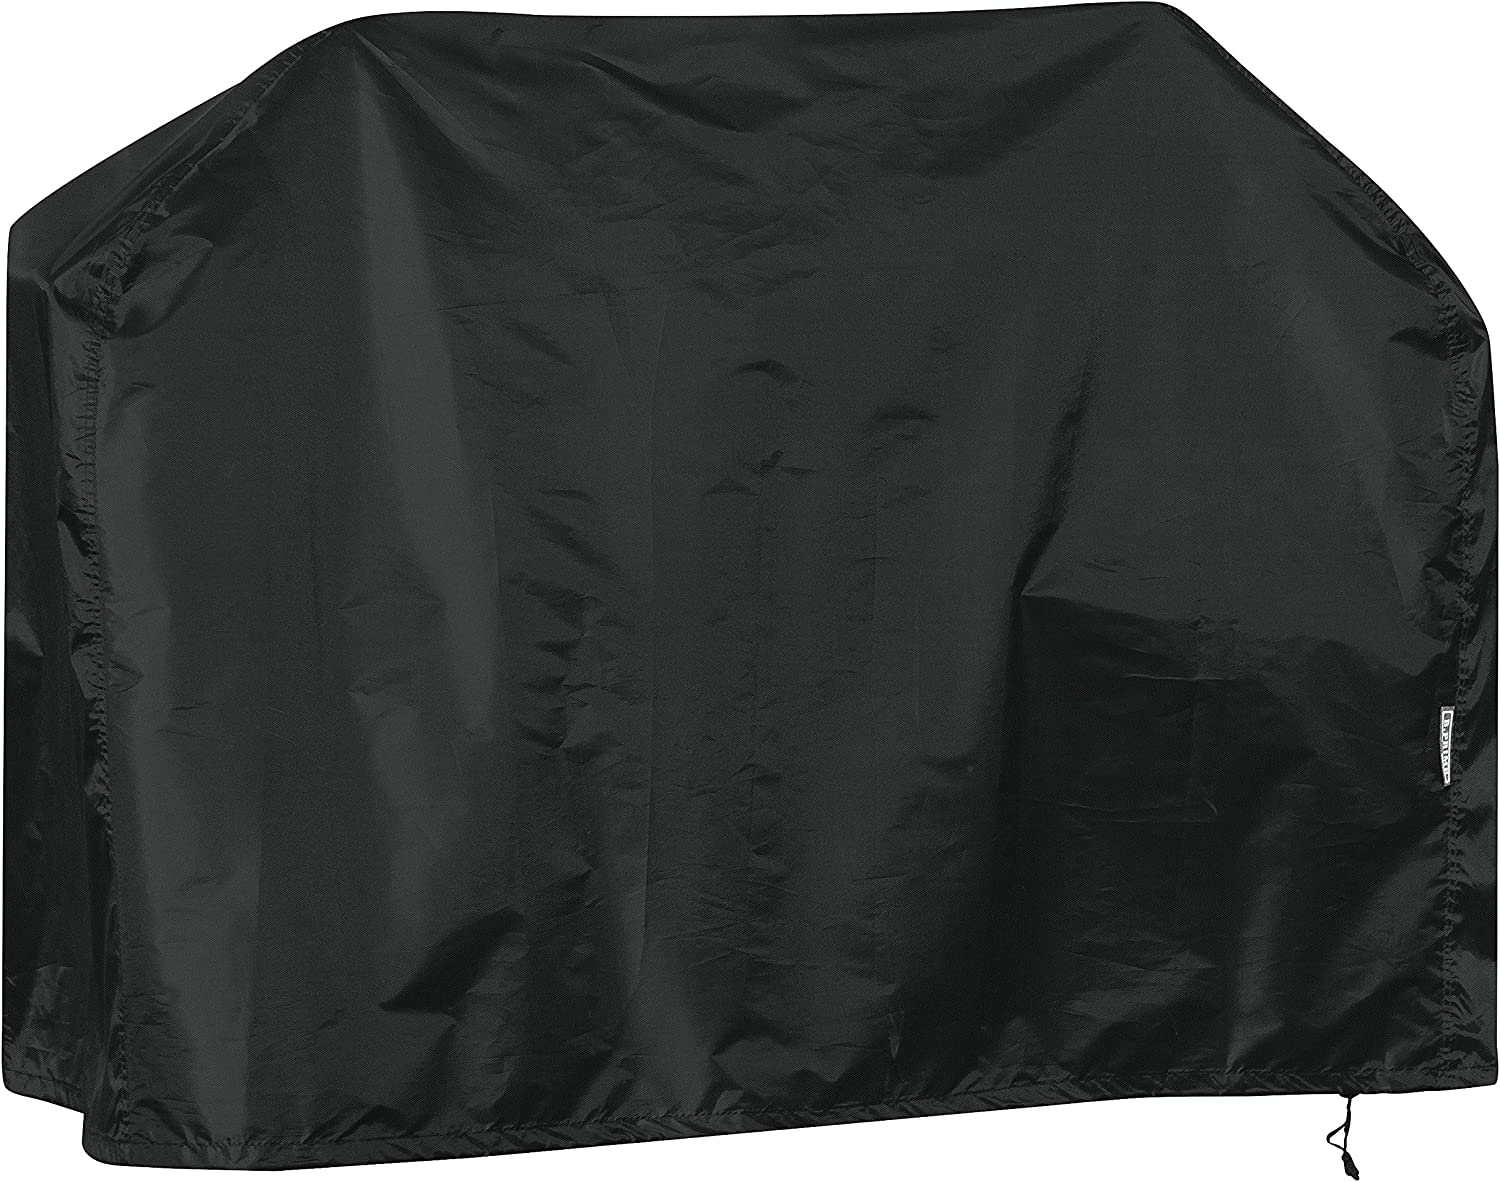 S B.PRIME Gas Barbecue Cover Premium Protective BBQ Cover made from 210D Oxford Polyester fabric Breathable and UV Stabilised L and XL sizes M Waterproof